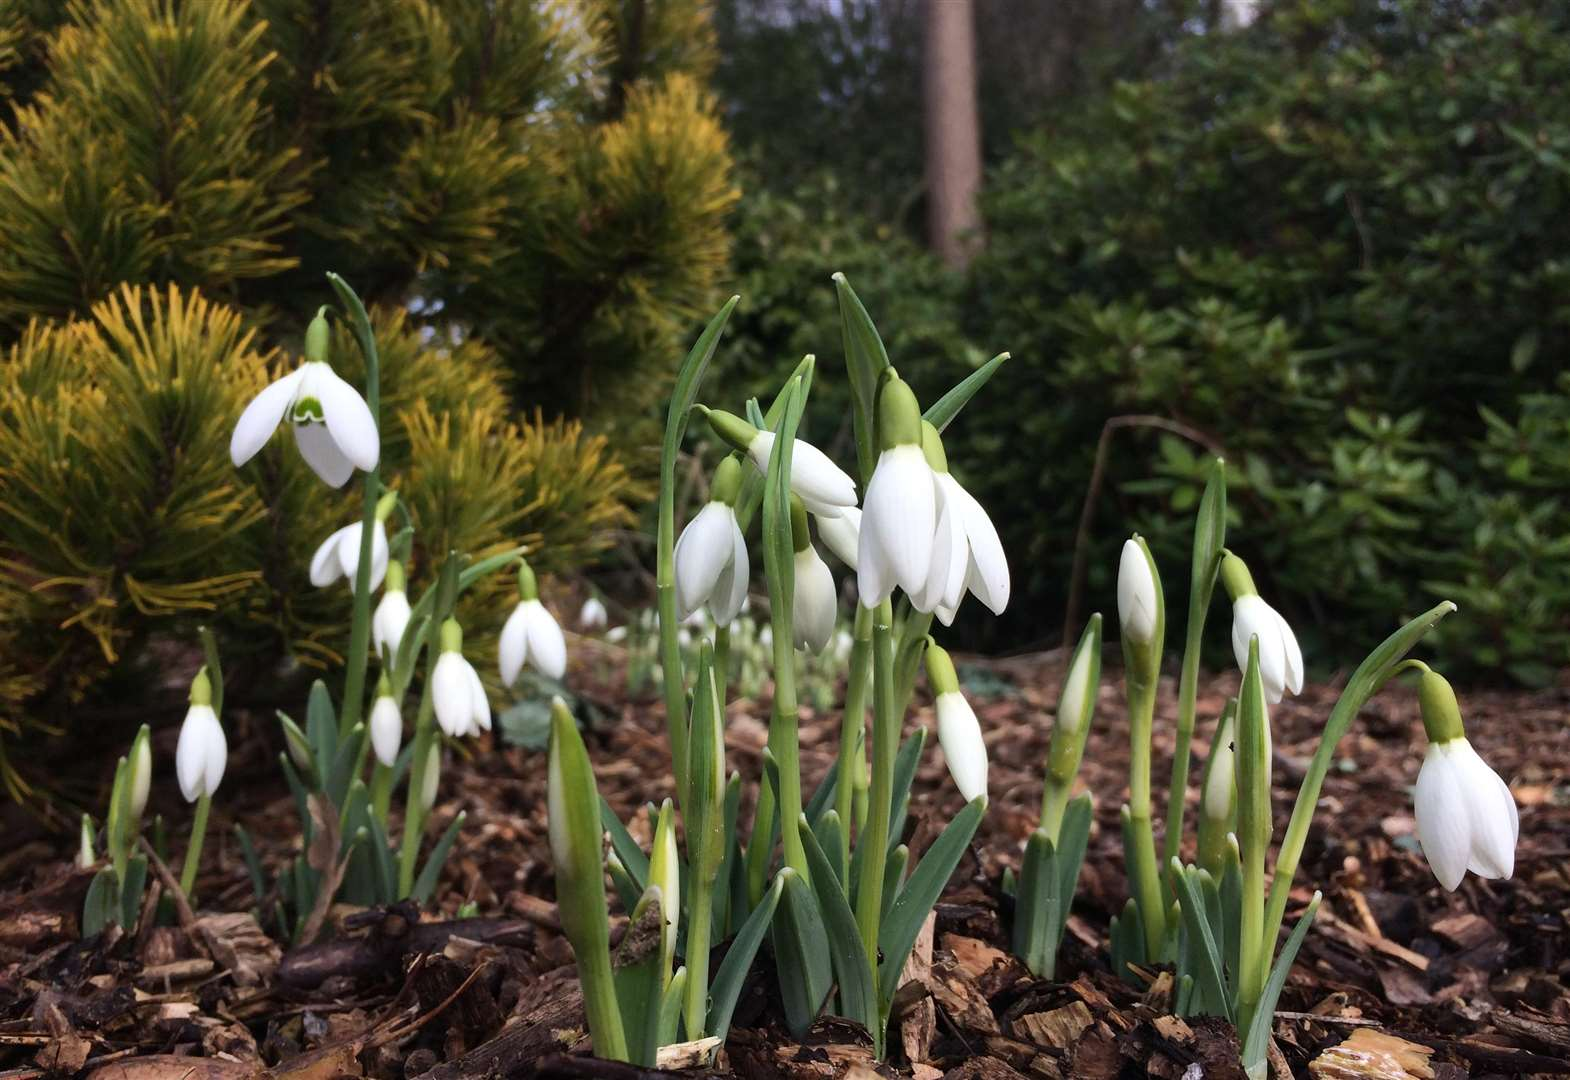 Snowdrops are set to be sensational